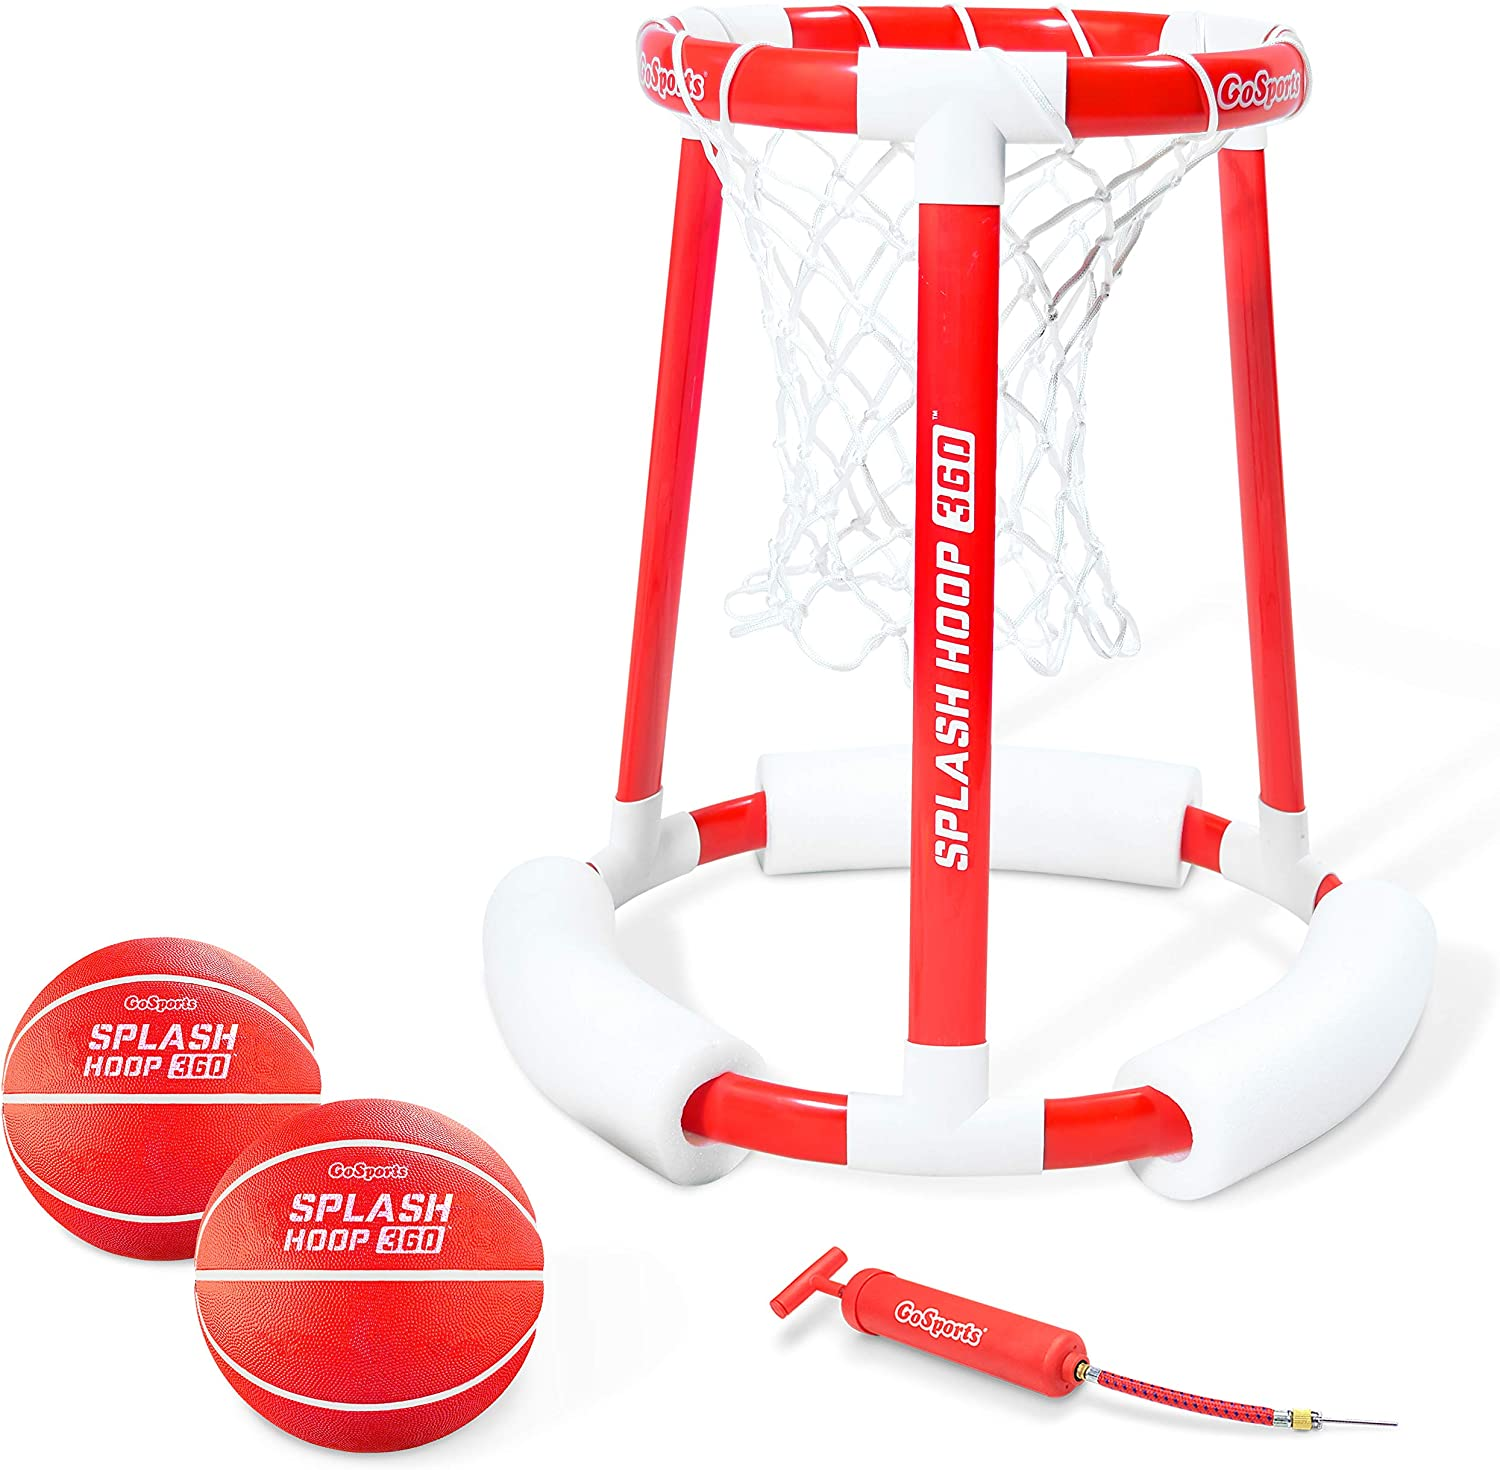 Go Sports Splash Hoop 360